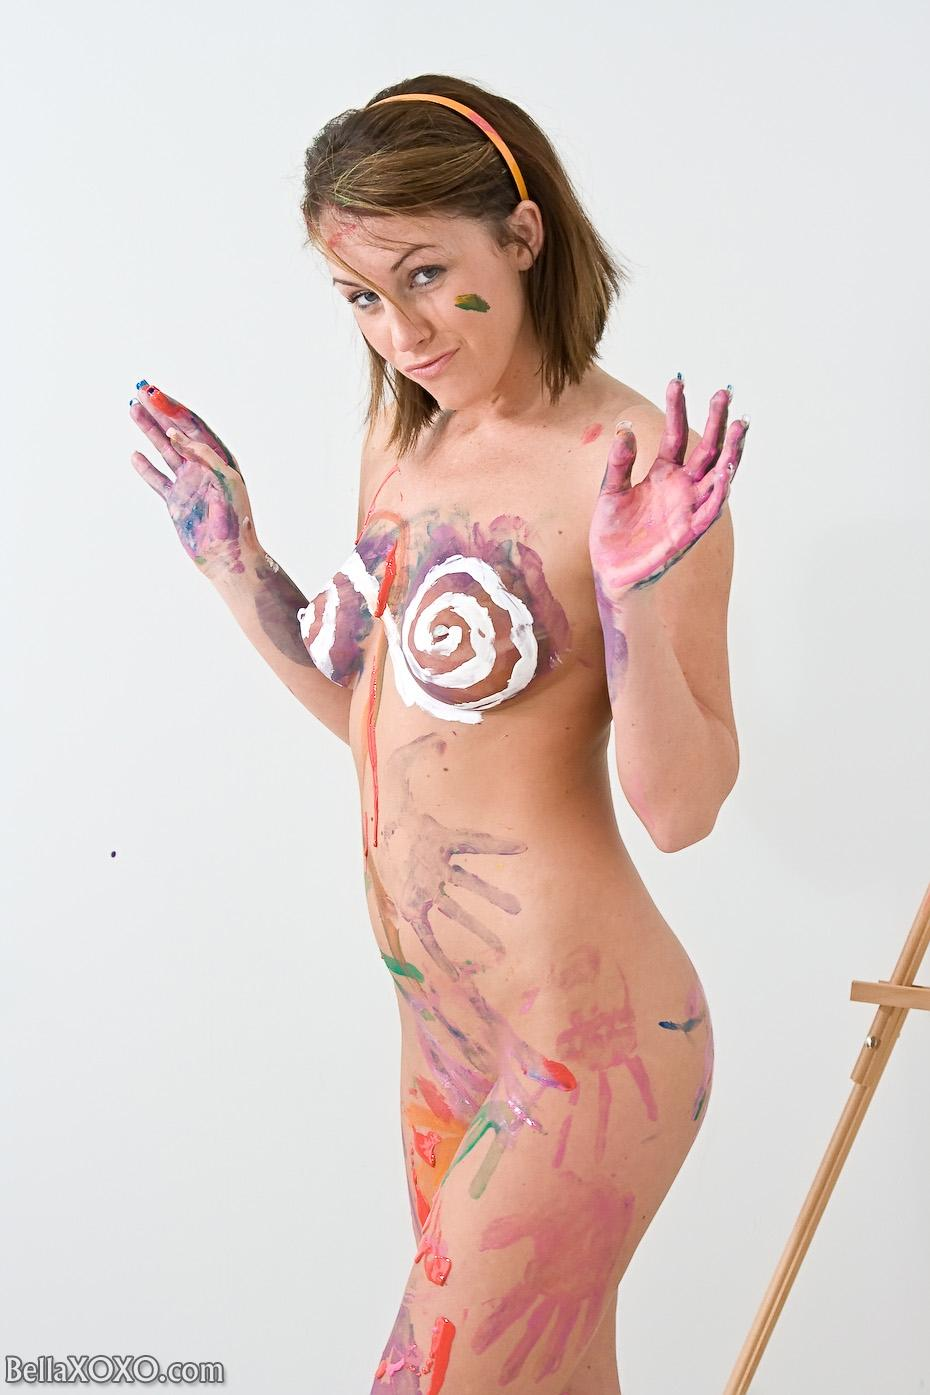 Body painting nude in public part 1 making of